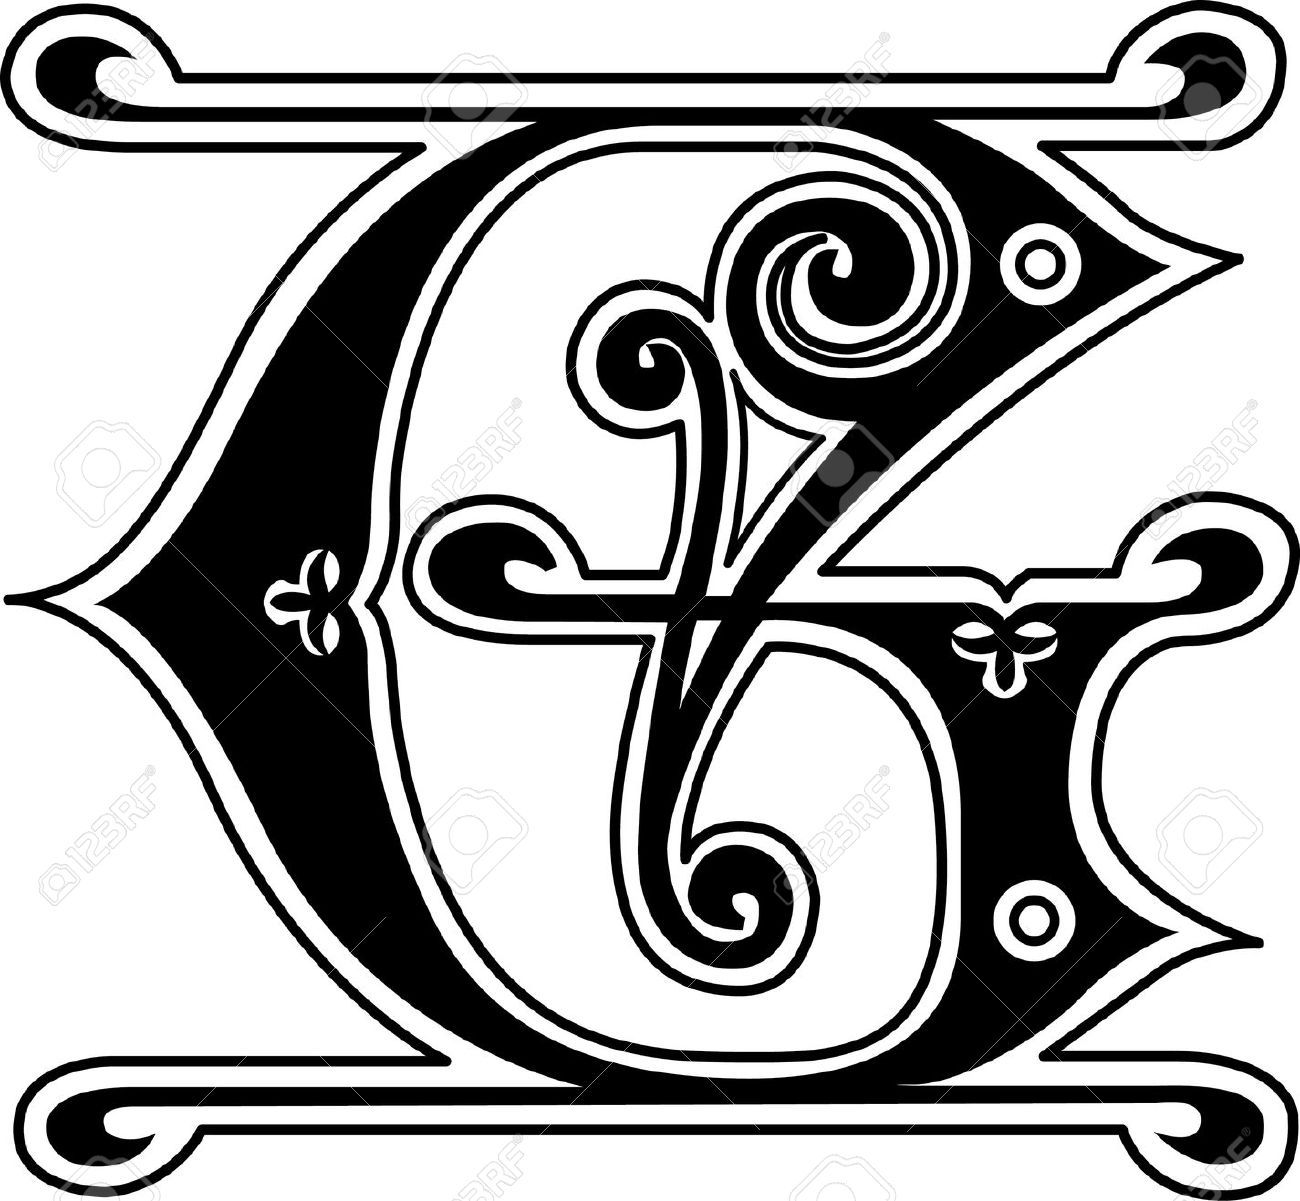 Classic Style English Alphabet Letter G Monochrome Royalty Free